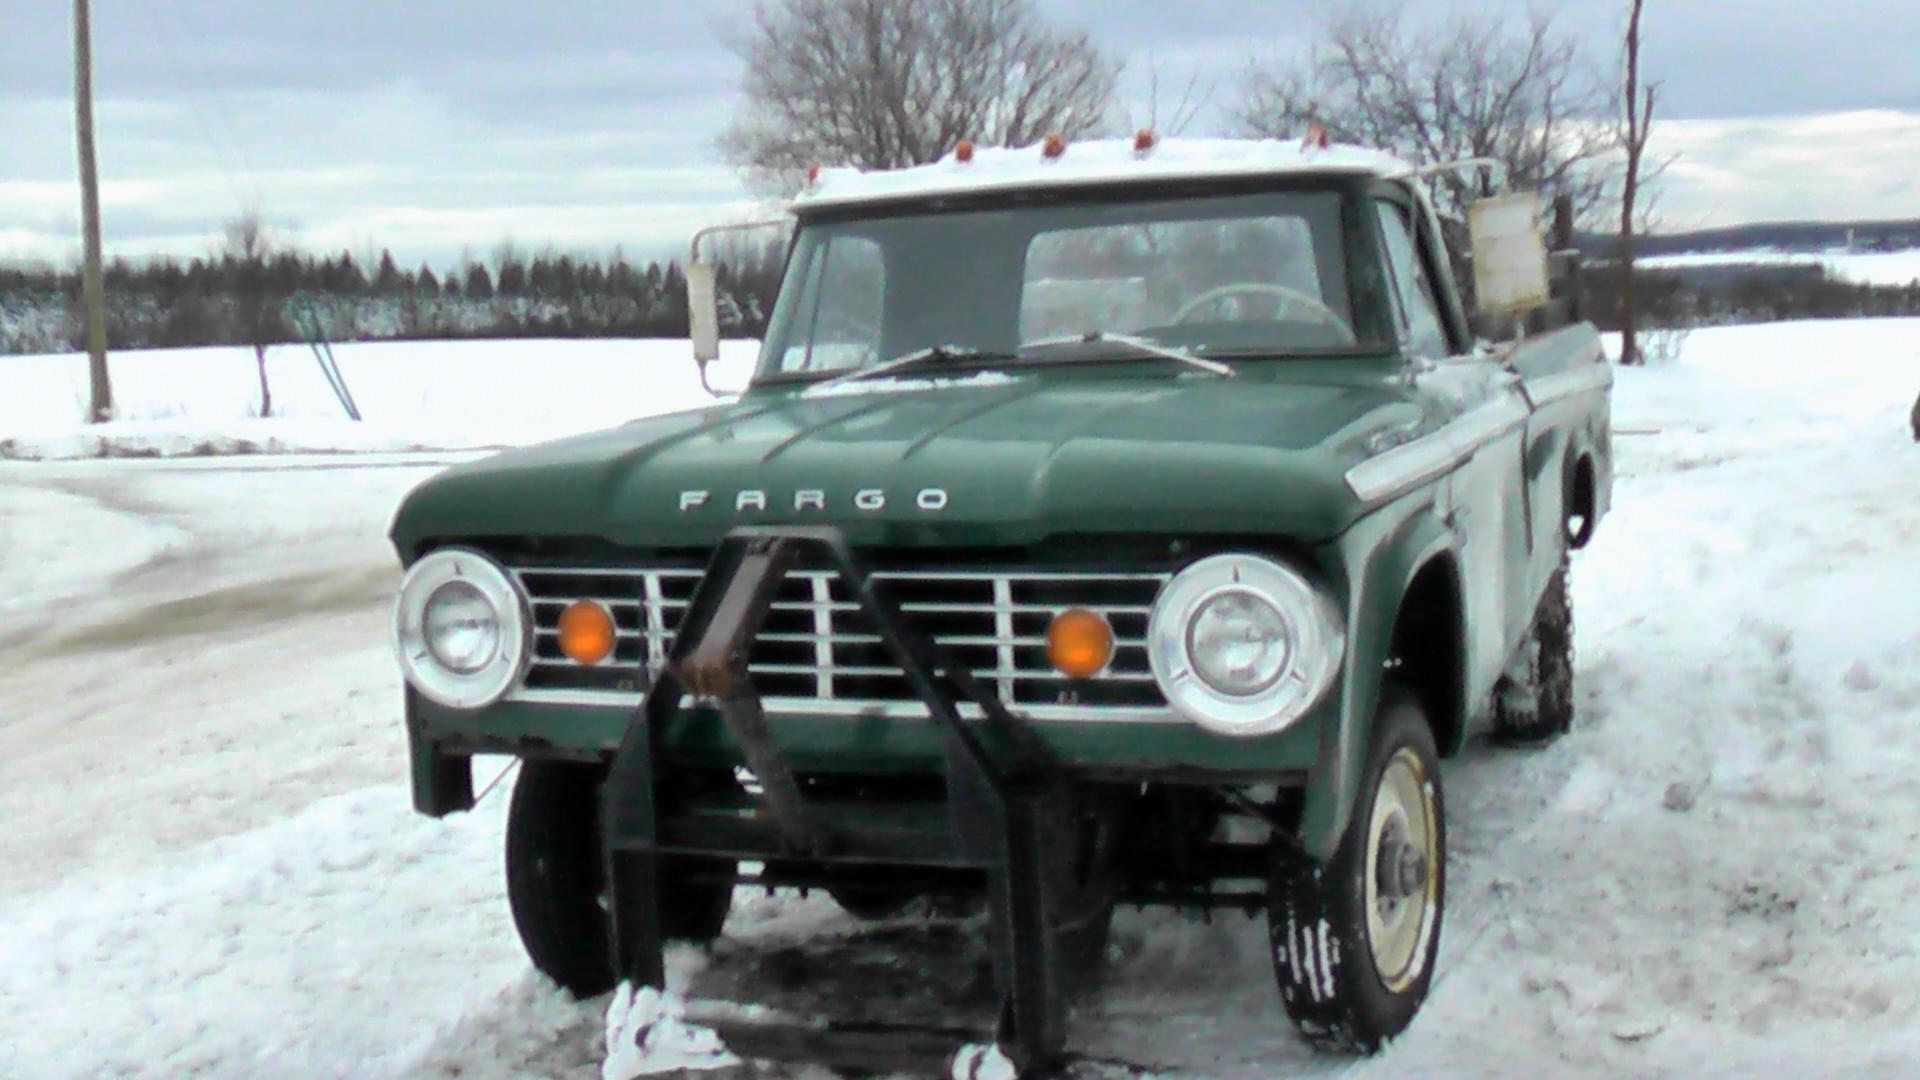 Willys Jeep For Sale >> magnumcid 1967 Dodge Power Wagon Specs, Photos, Modification Info at CarDomain